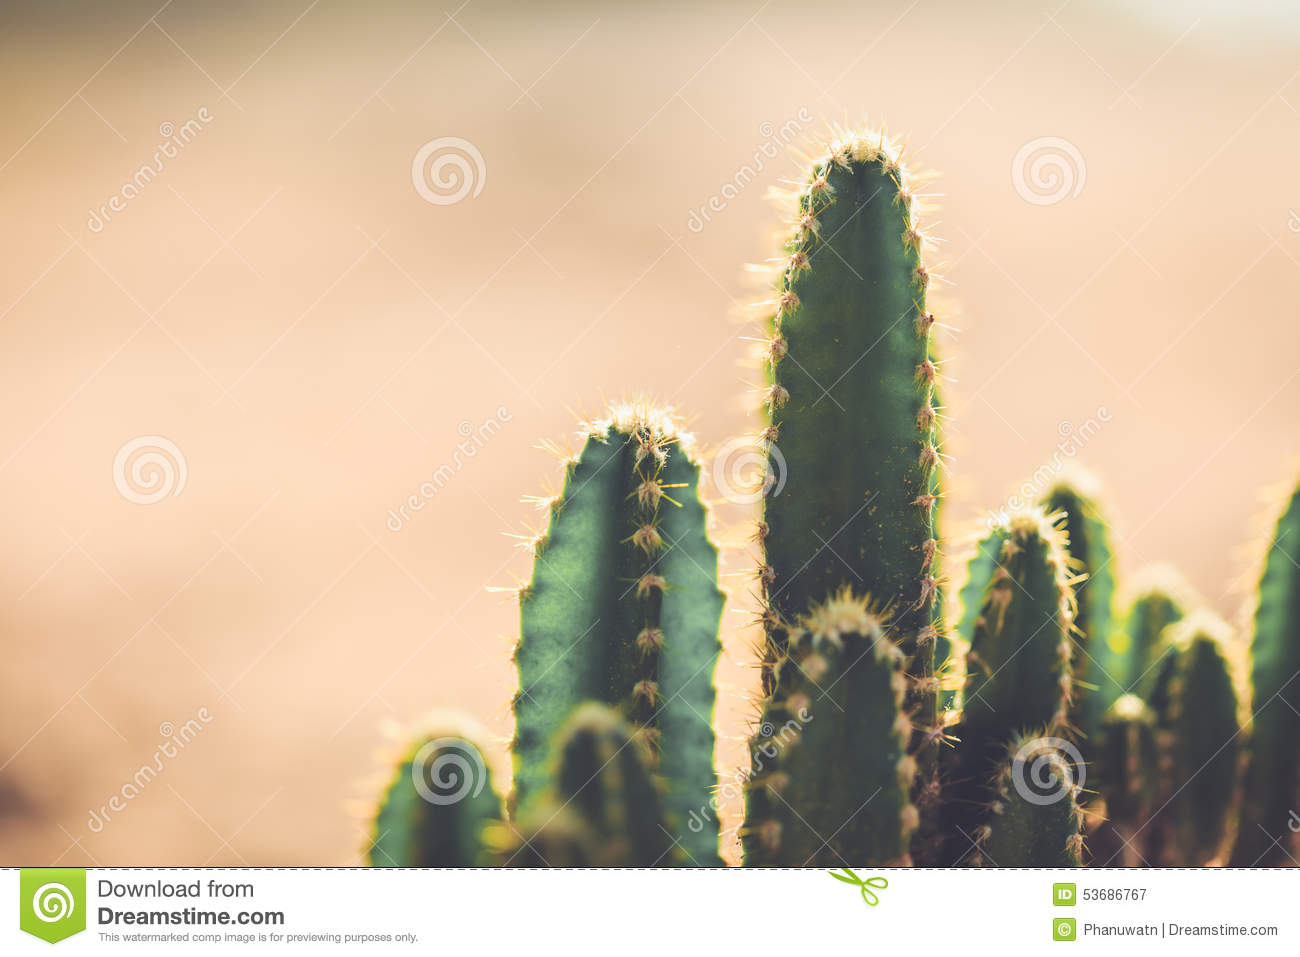 cactus in the garden with vintage style picture stock